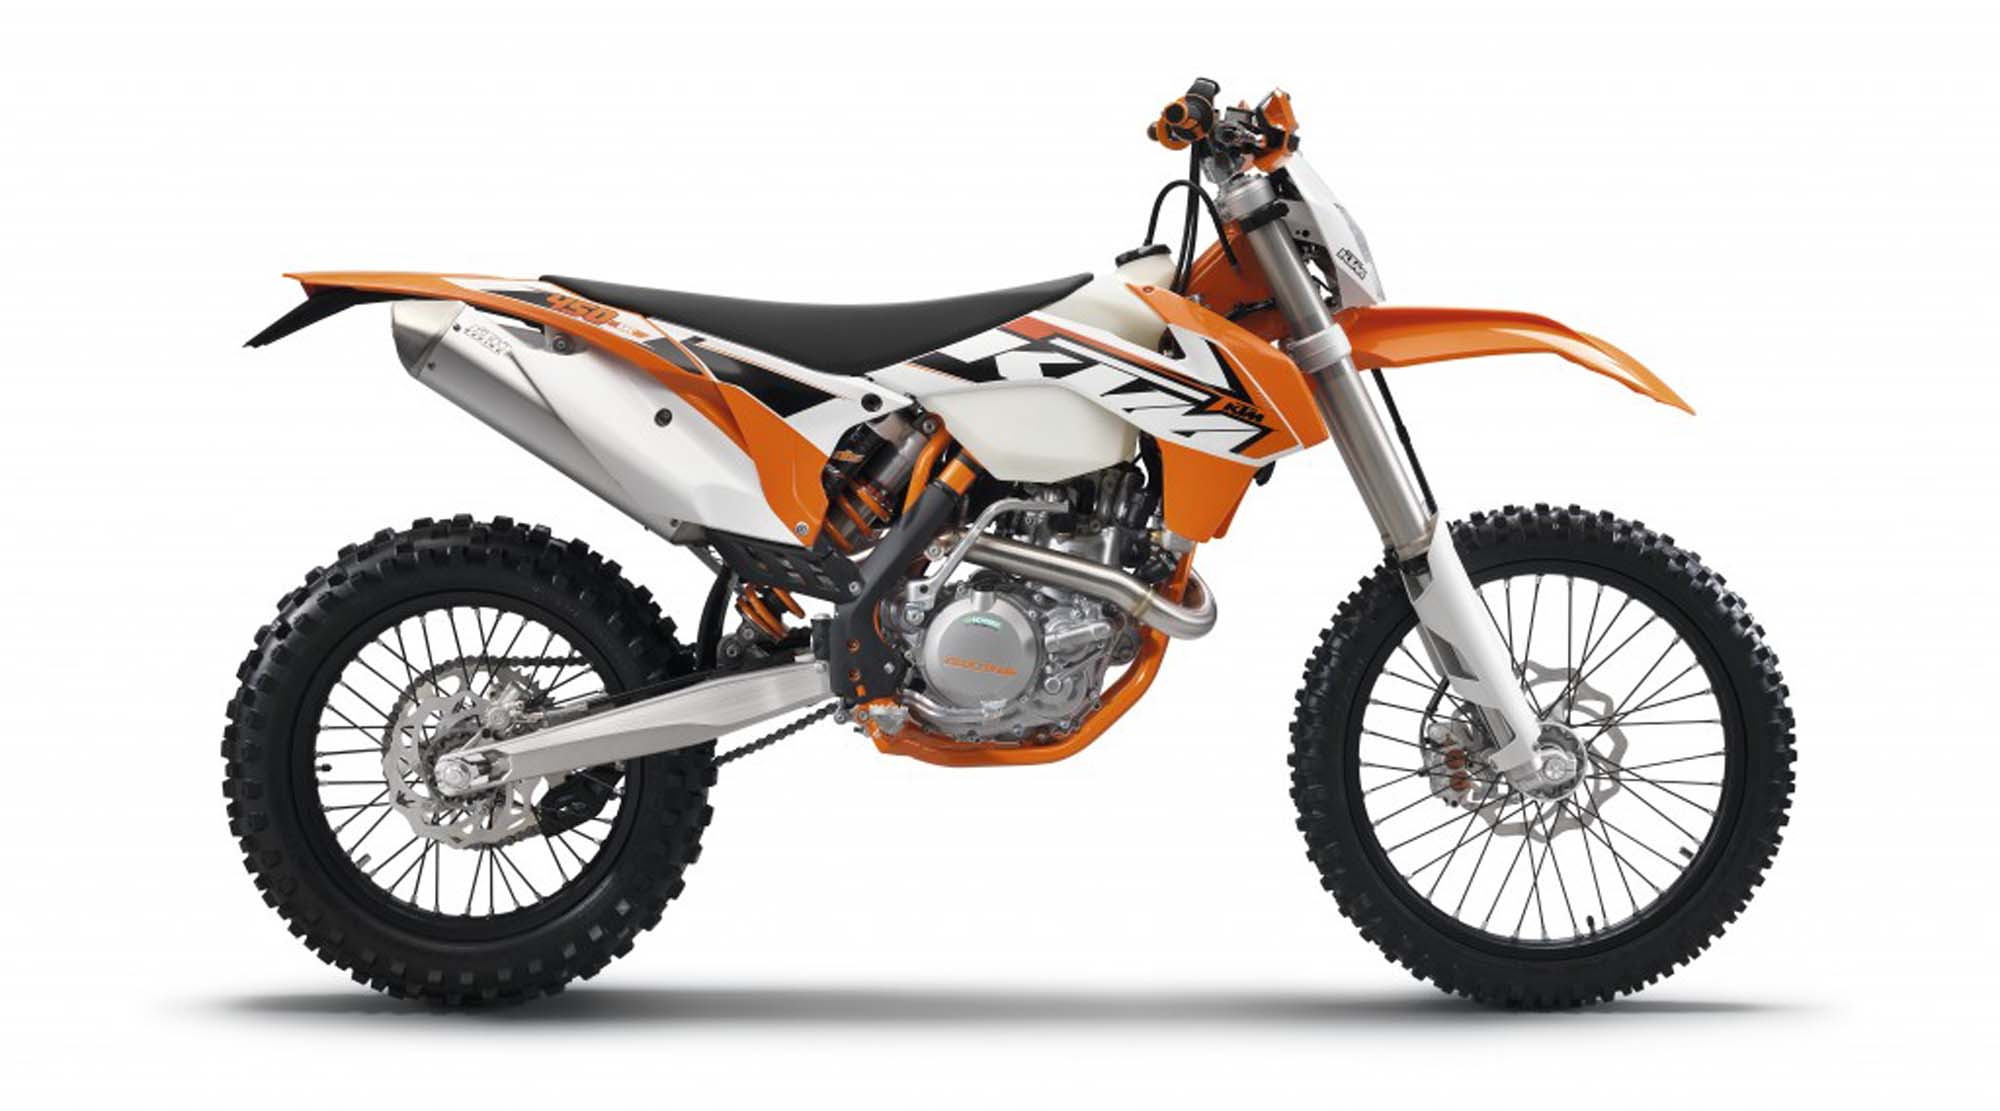 ktm 450 exc test gebrauchte technische daten. Black Bedroom Furniture Sets. Home Design Ideas